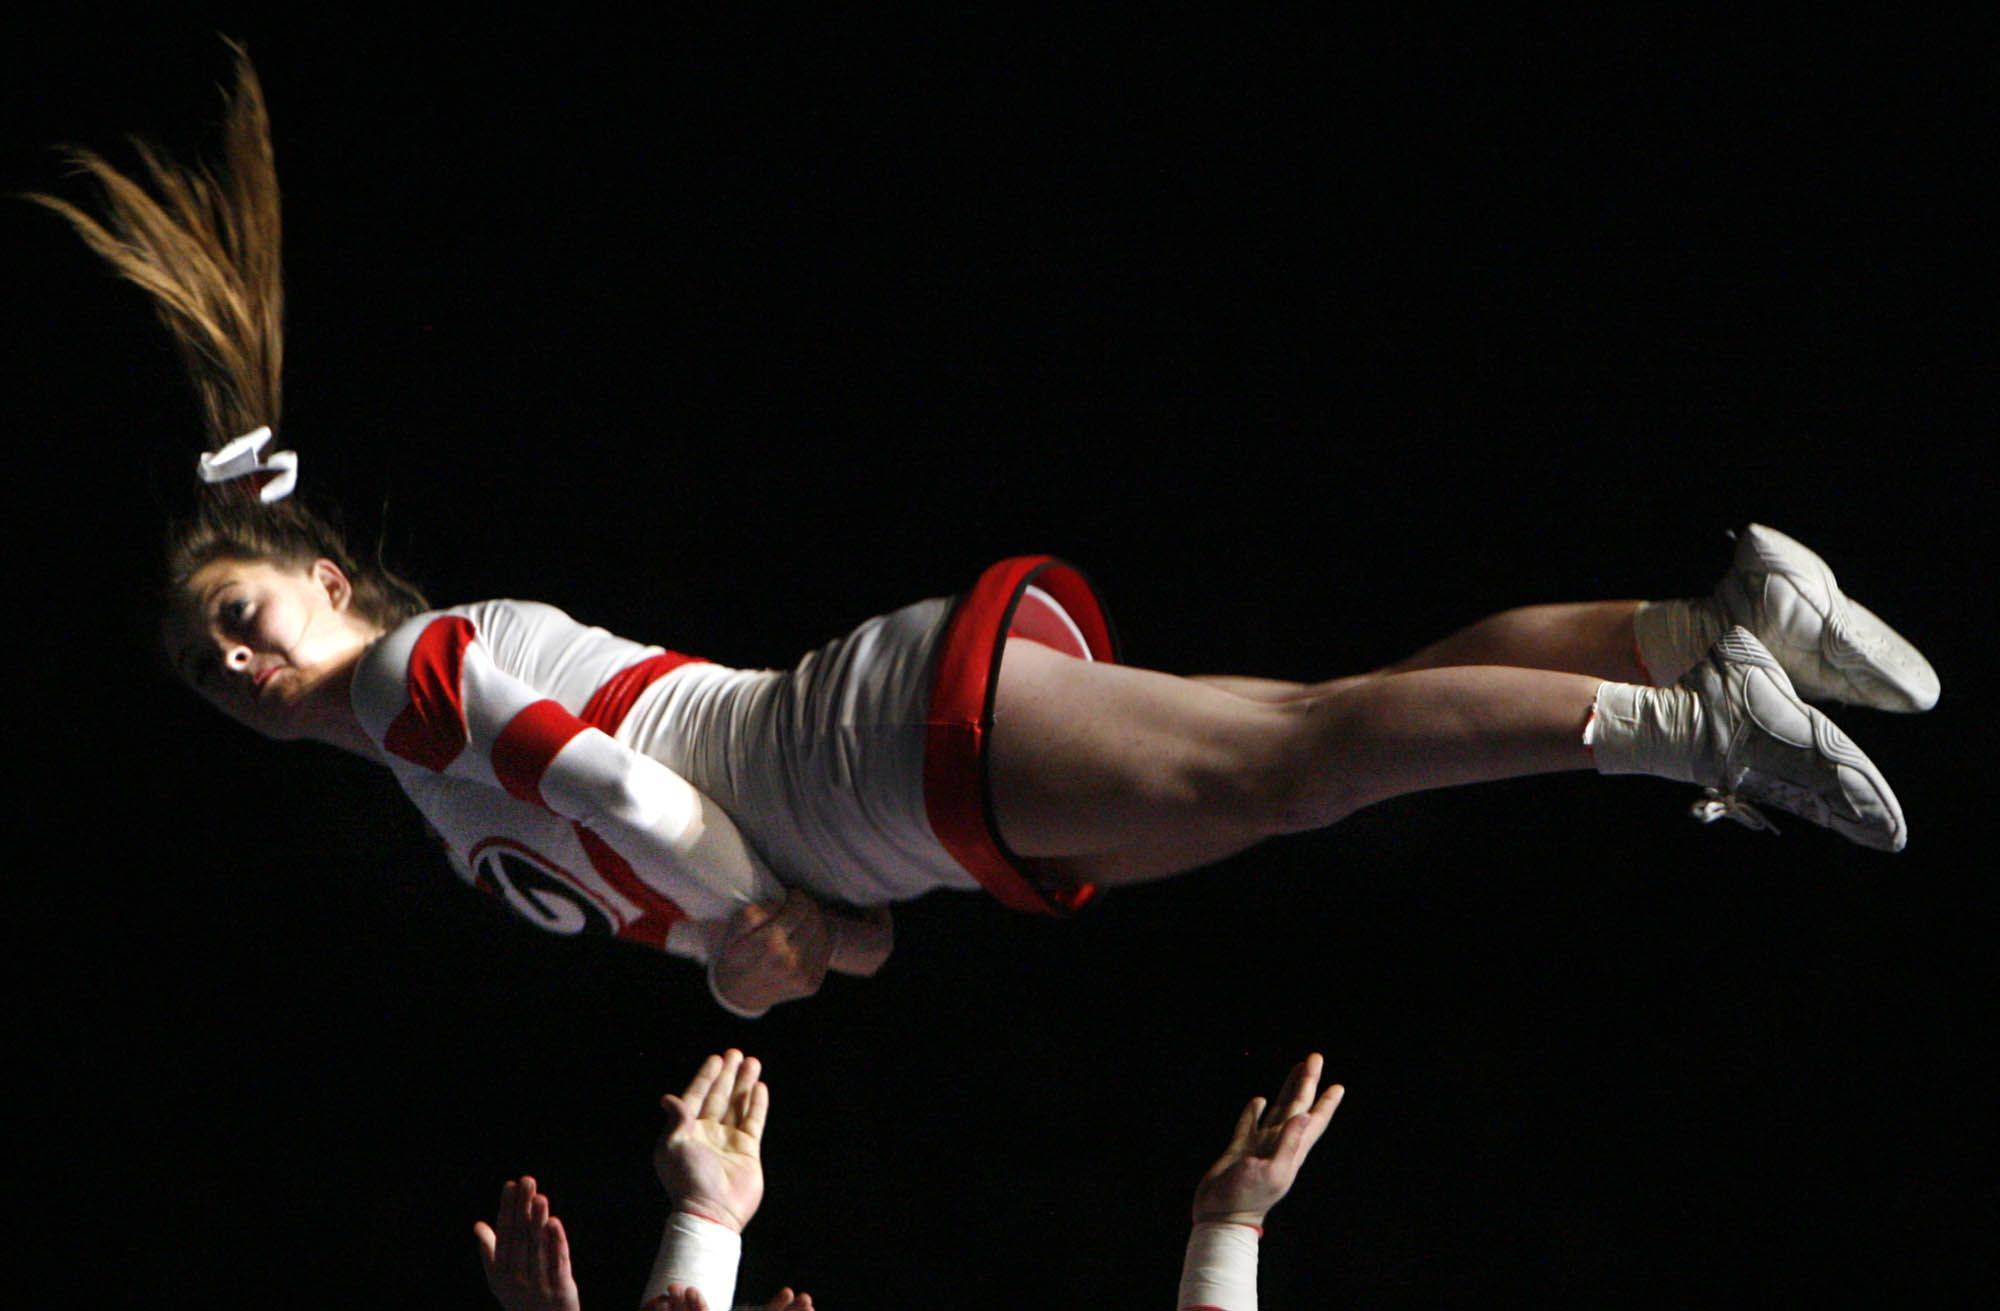 Grant performs at IHSA cheerleading state finals at U.S. Cellular Coliseum in Bloomington on Saturday, February 4th.